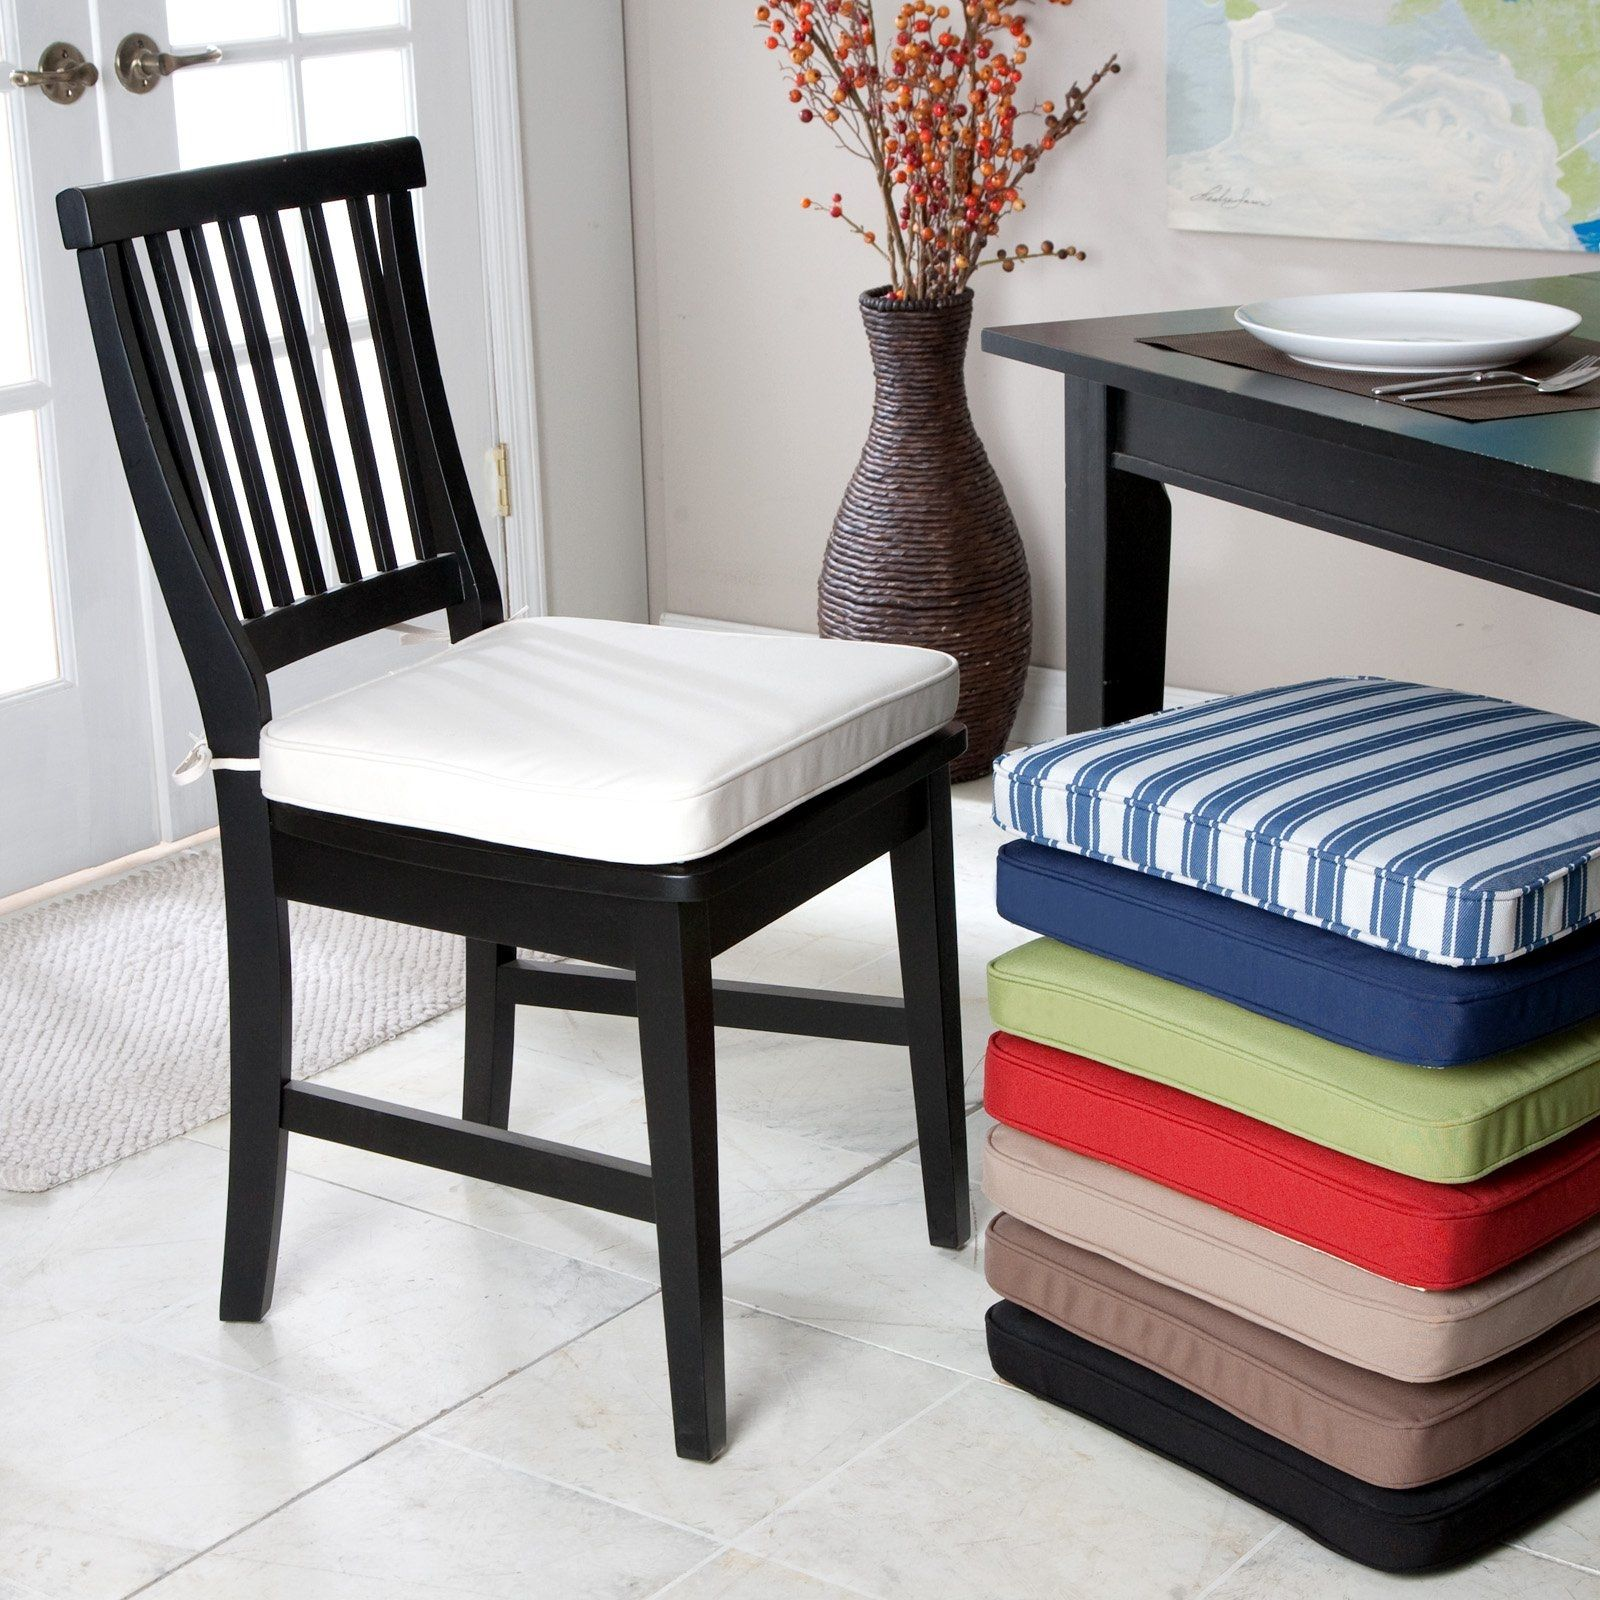 Dining Chair Seat Cushion Covers  Httpimages11  Pinterest Unique Seat Cushion For Dining Room Chairs 2018